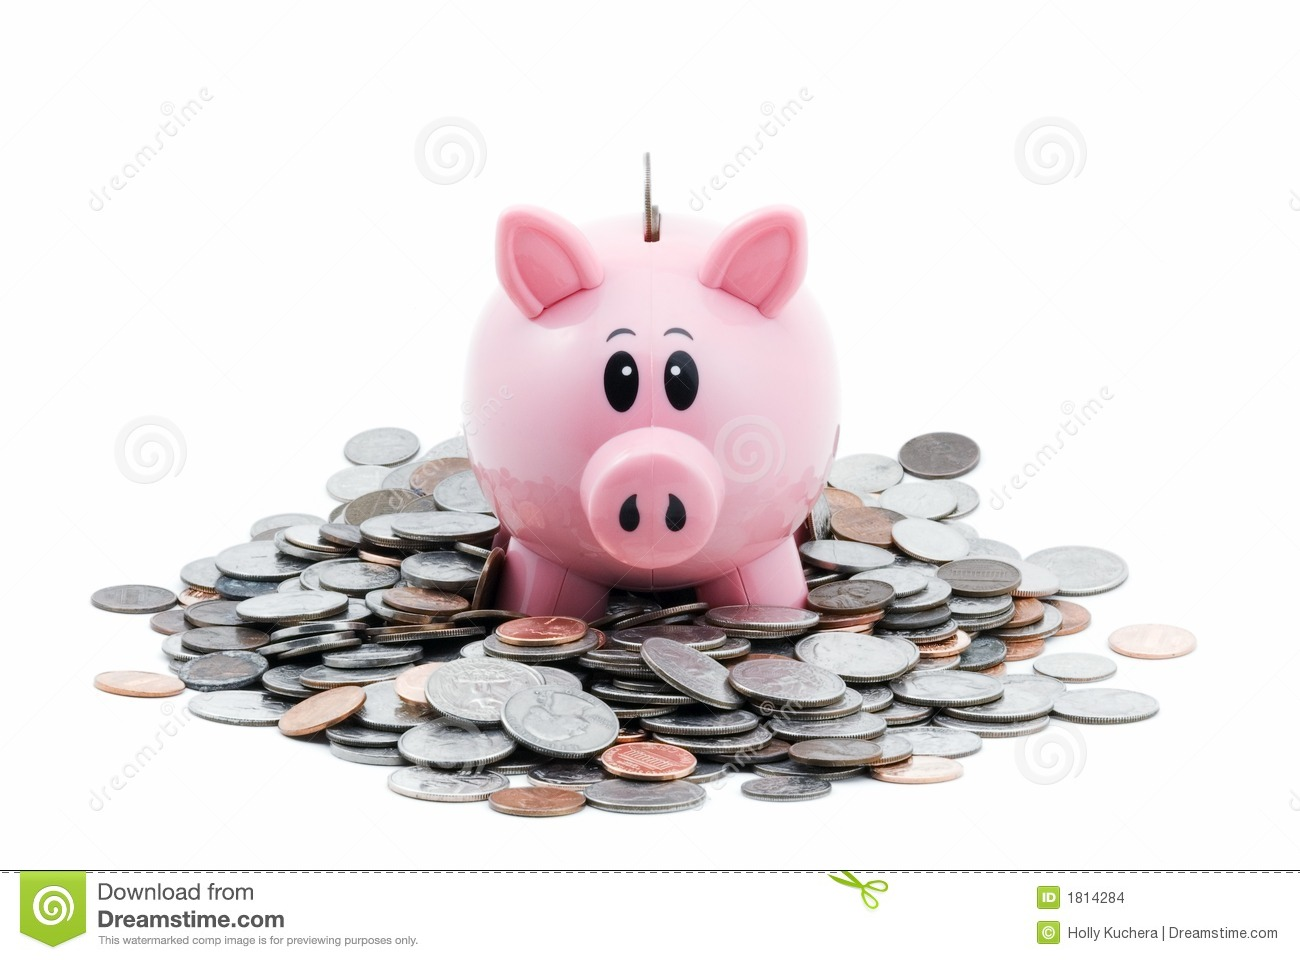 Piggy Bank in Pile of Coins